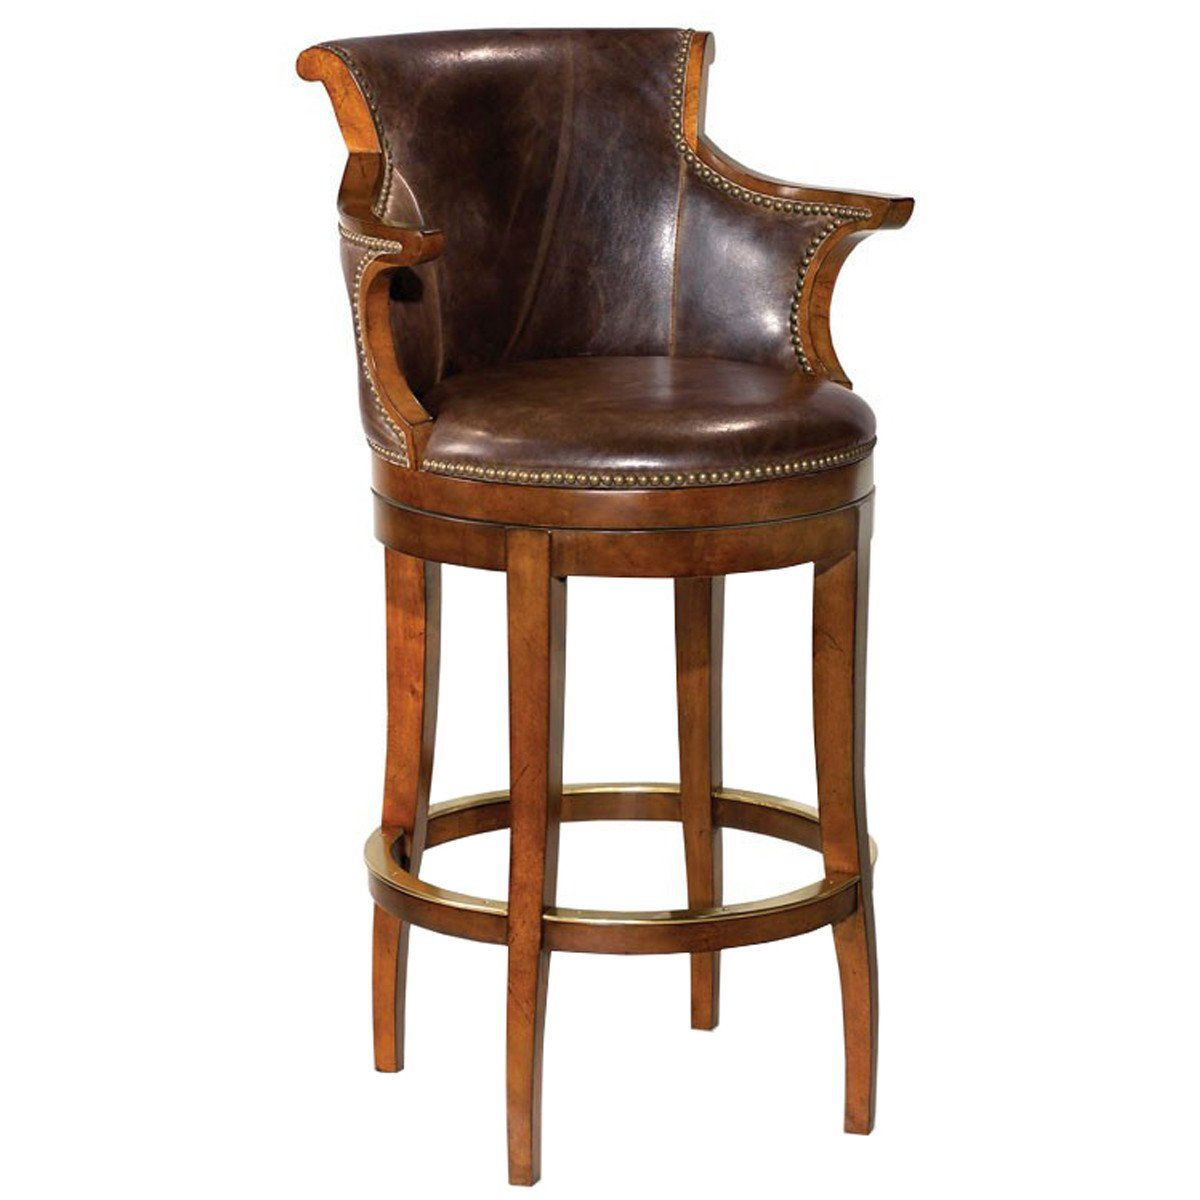 Marvelous Woodbridge Furniture Swivel Leather Bar Stool In 2019 Caraccident5 Cool Chair Designs And Ideas Caraccident5Info